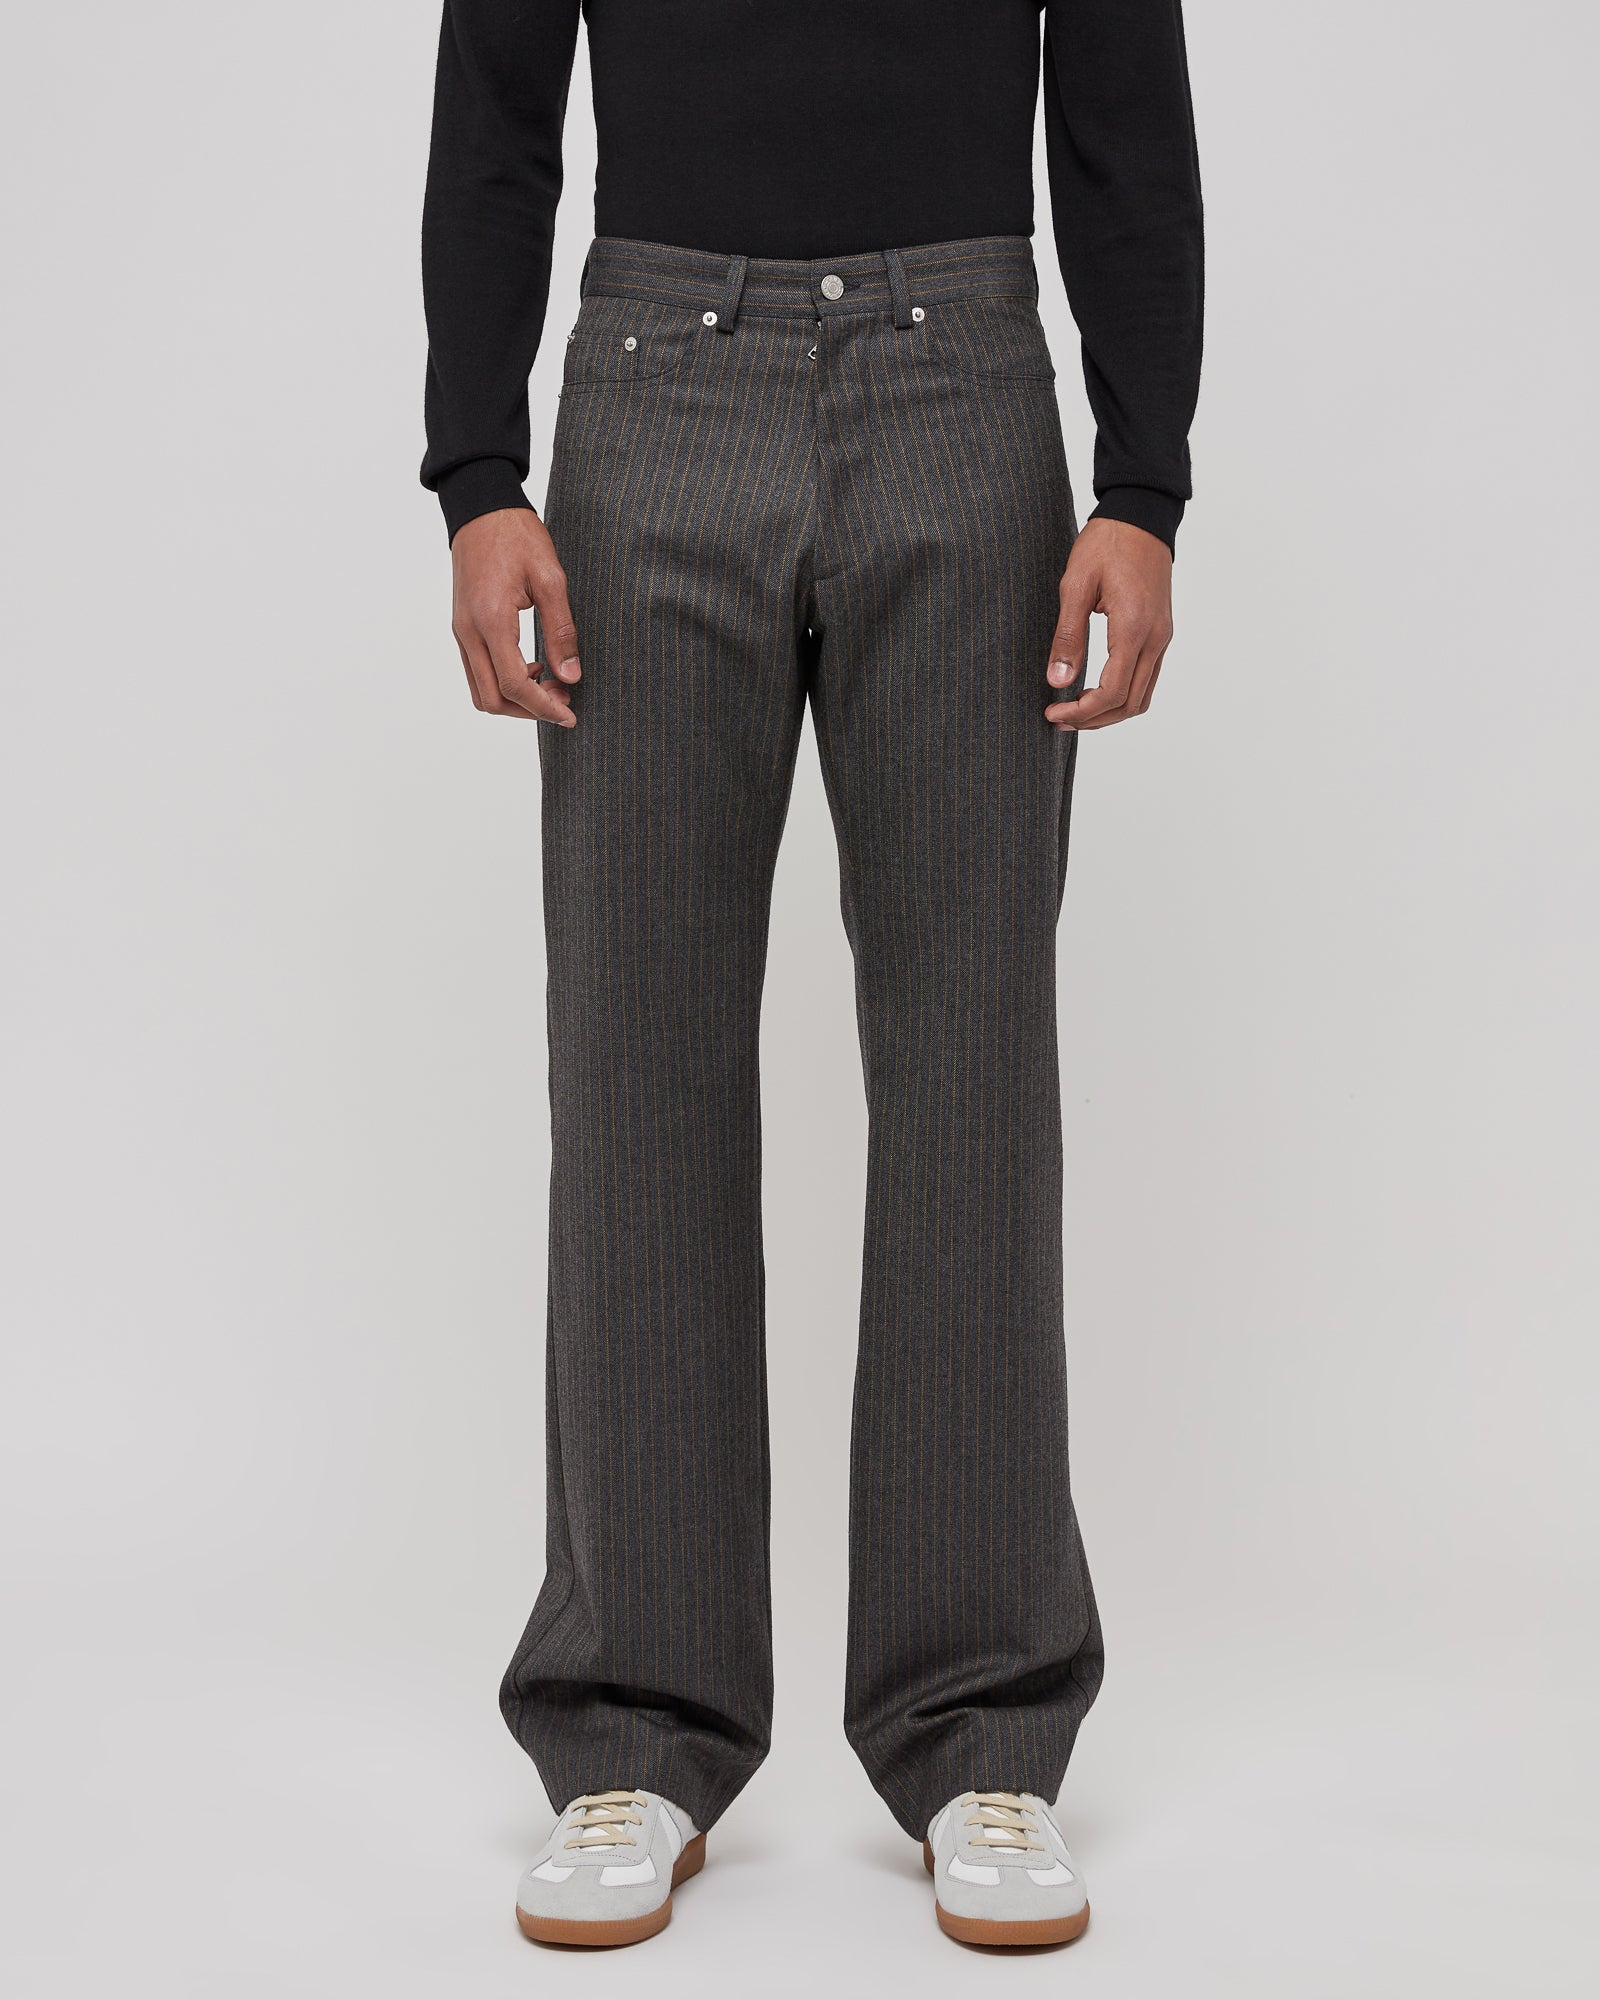 Powsen Pants in Gray